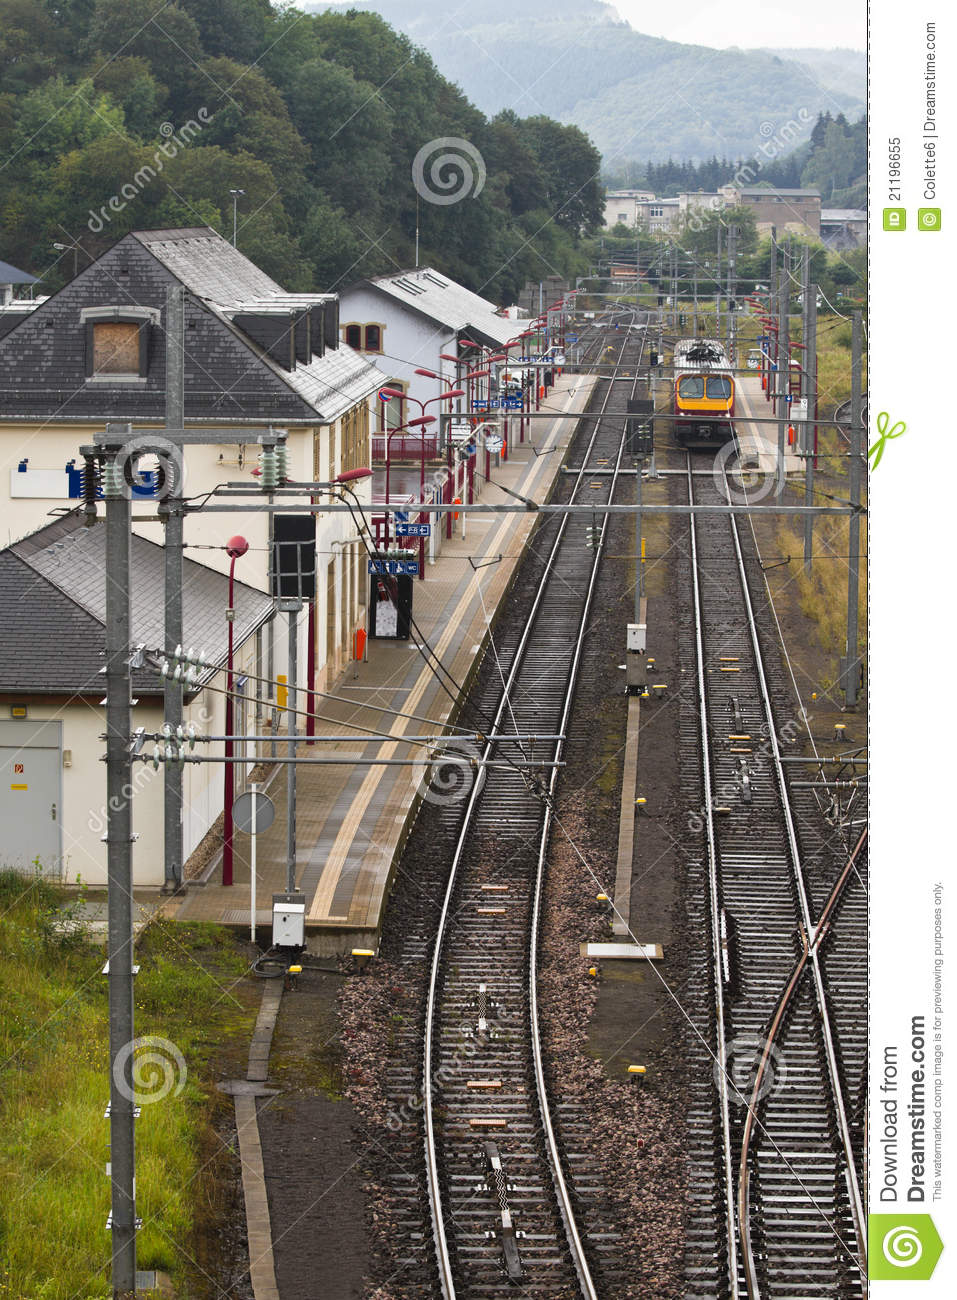 Small railwaystation with railroad and train